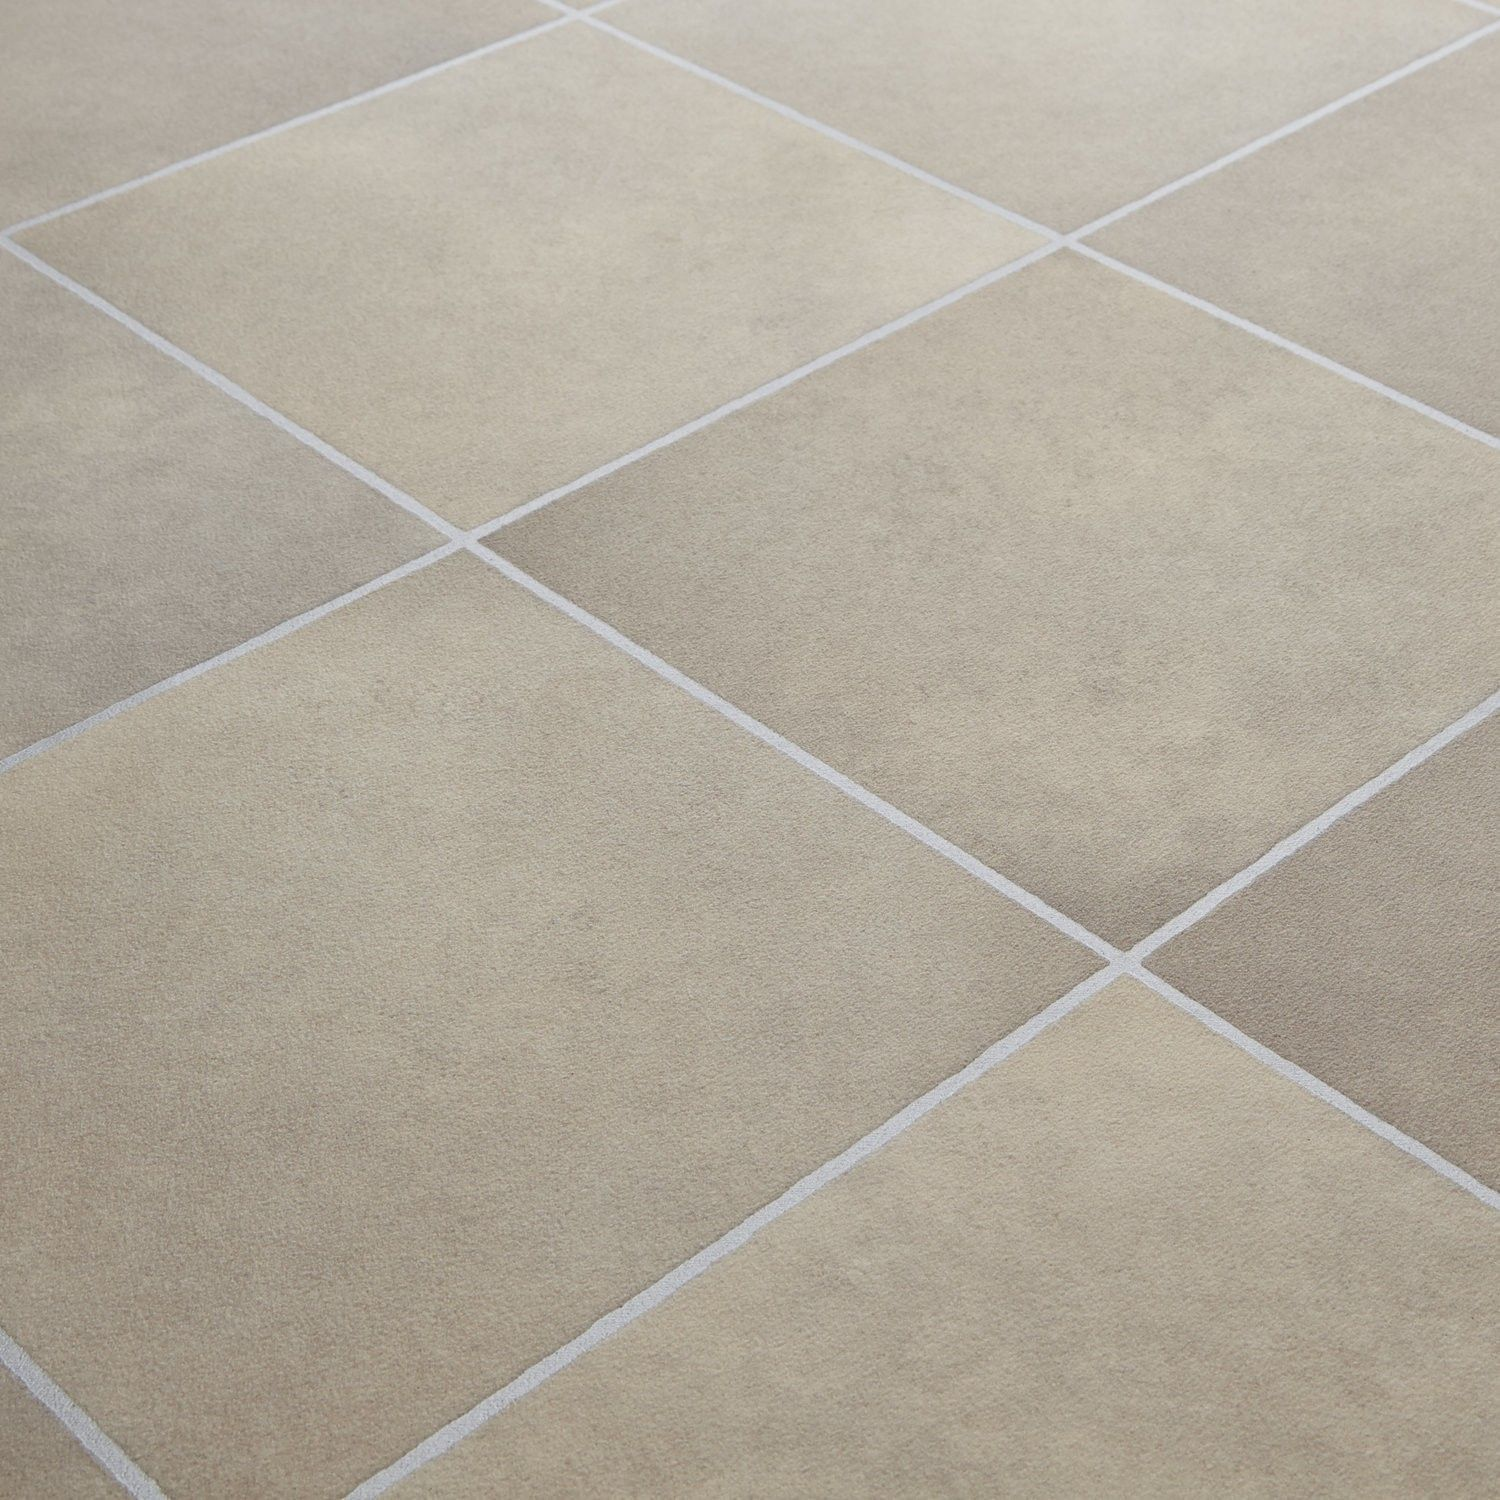 Sandstone Kitchen Floor Tiles 1039 Mardi Gras 535 Durango Stone Tile Effect Vinyl Flooring